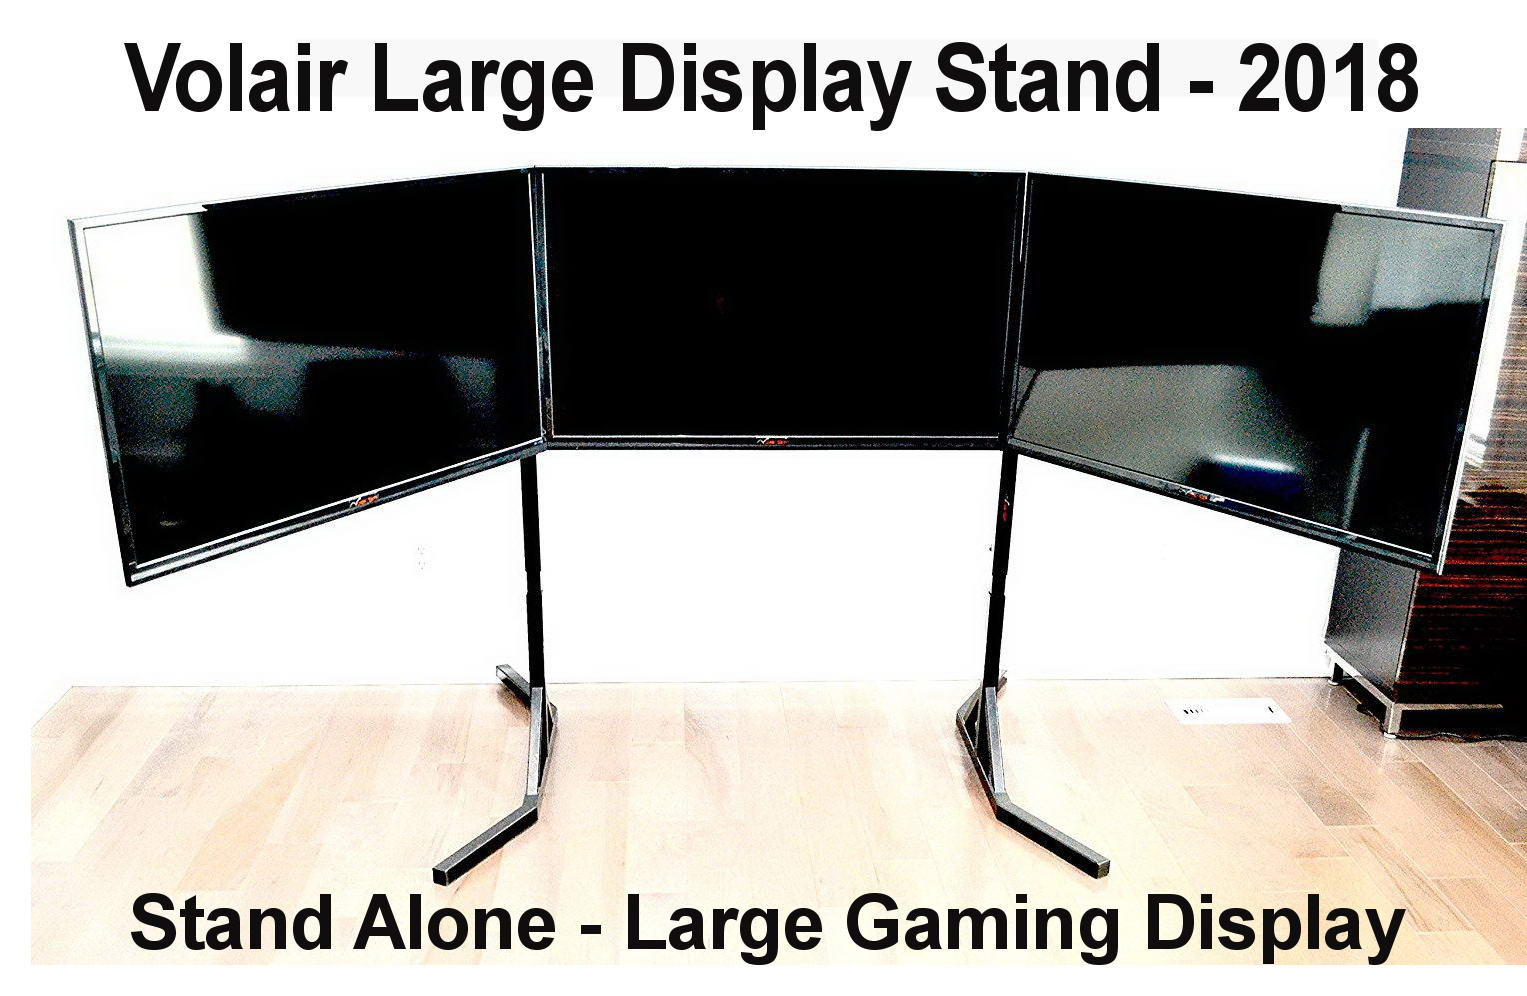 Sungard Exhibition Stand Here Alone : Volair sim large display stand hardware the avsim